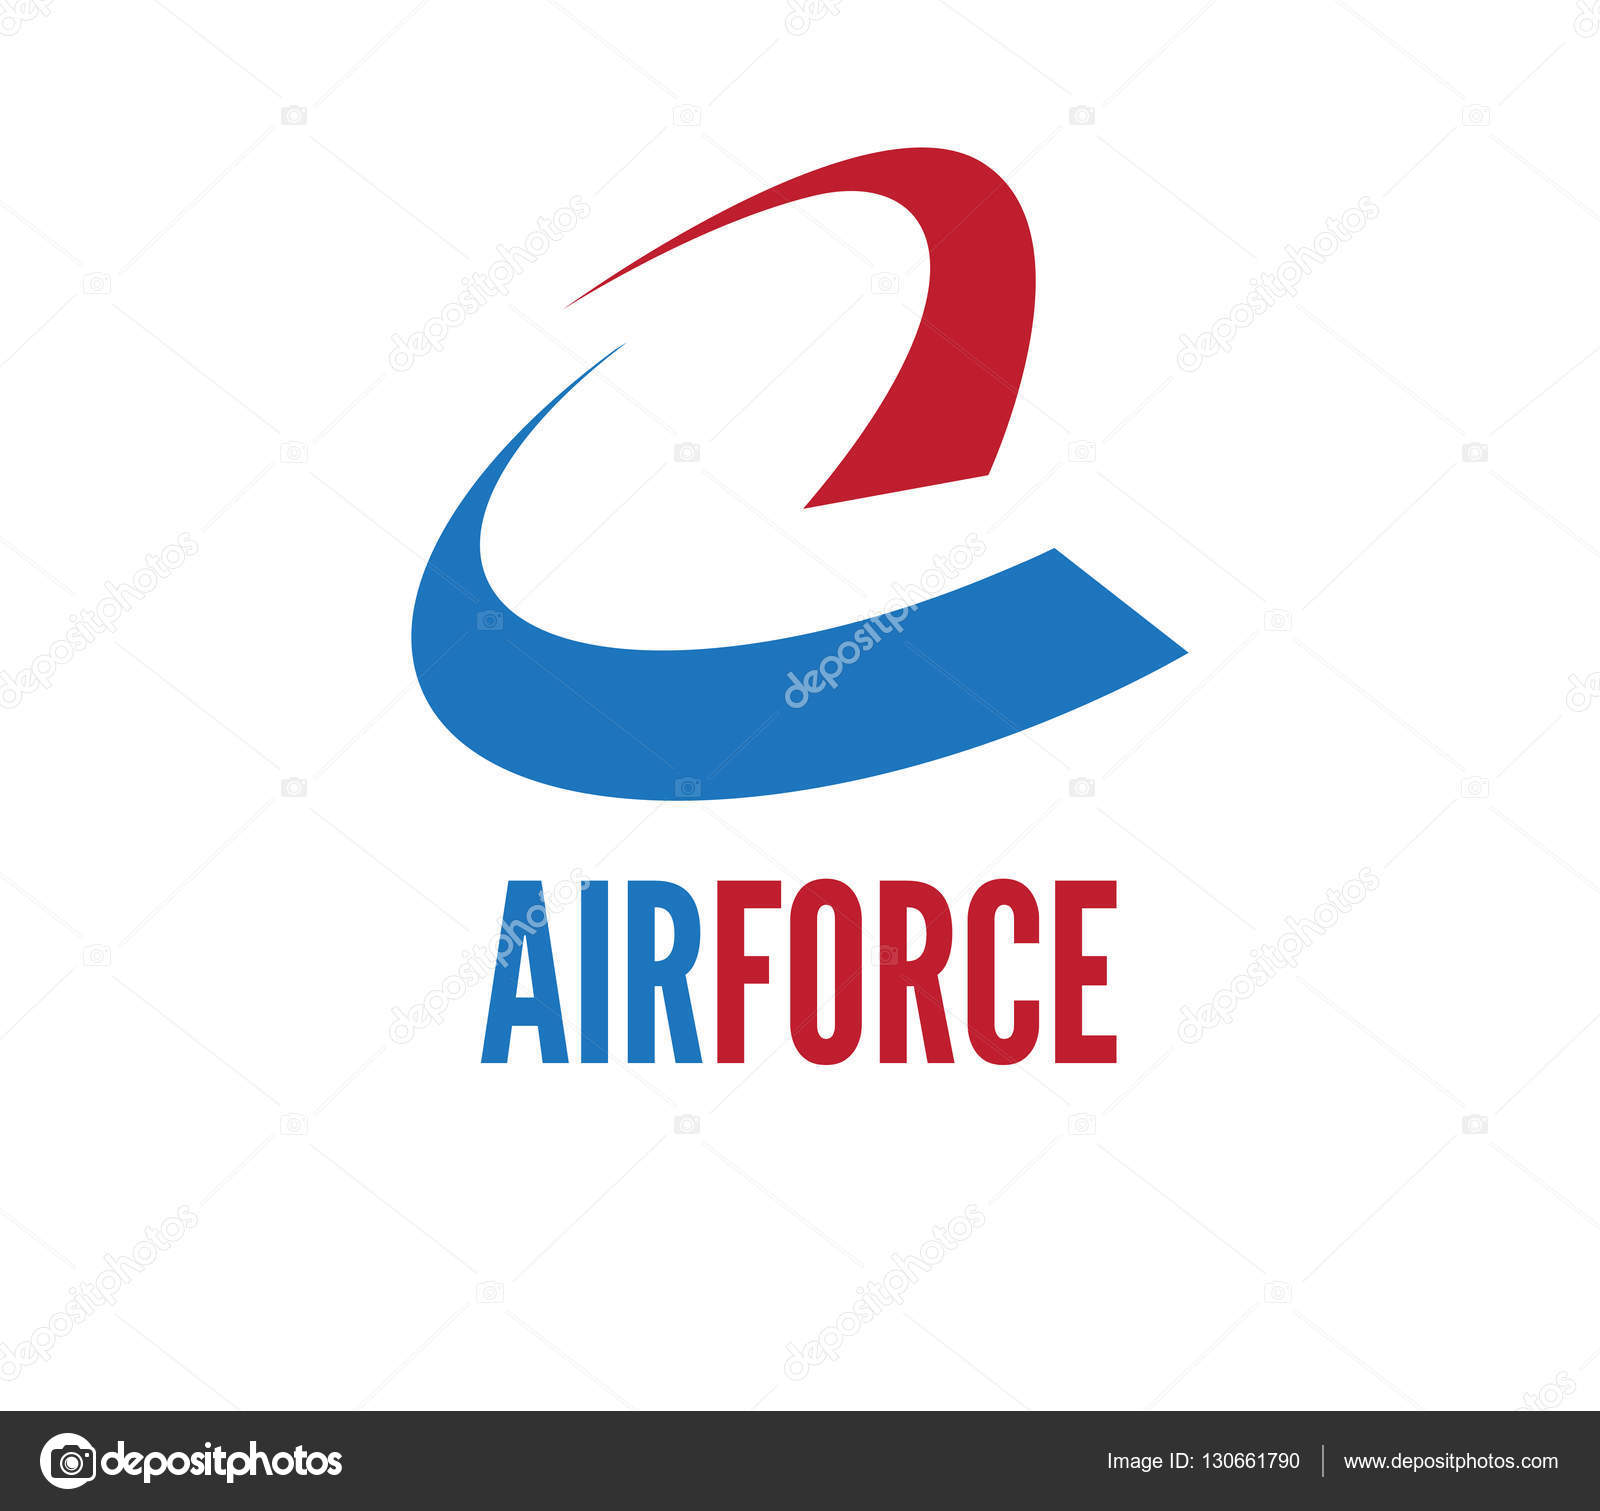 Air force logo stock vector sdcrea 130661790 air force logo stock vector voltagebd Images